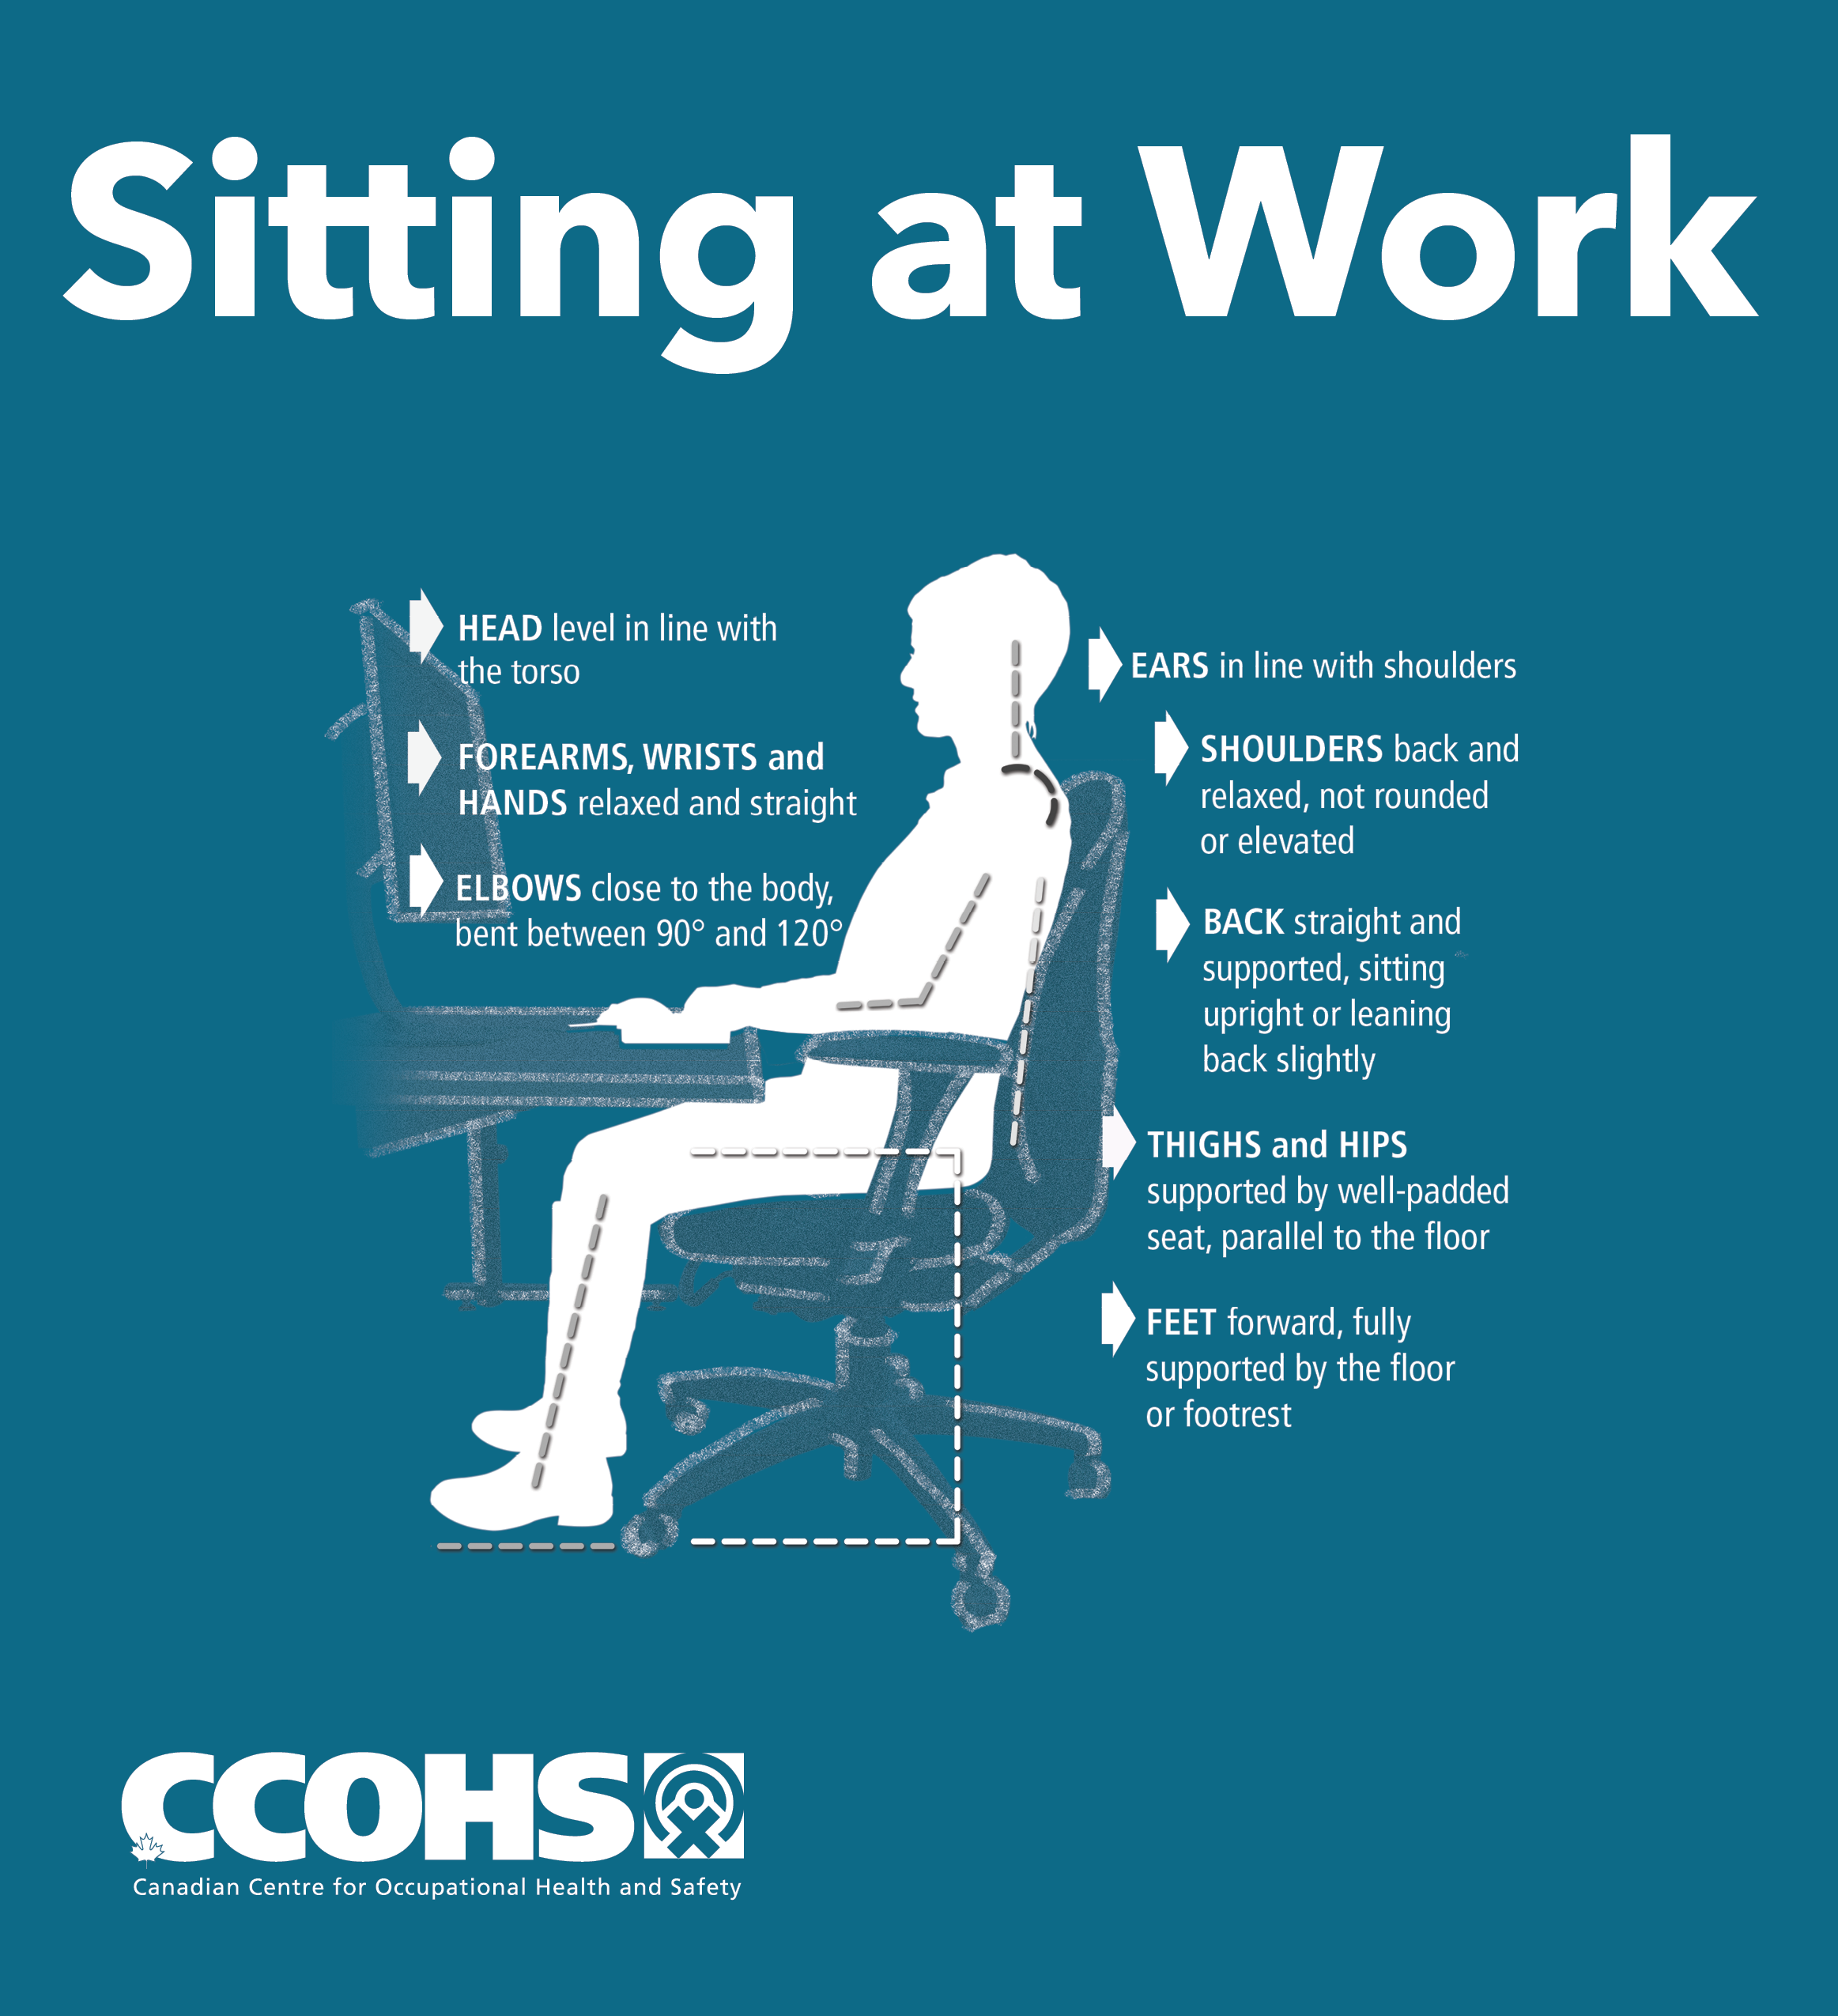 Sitting at Work poster's image